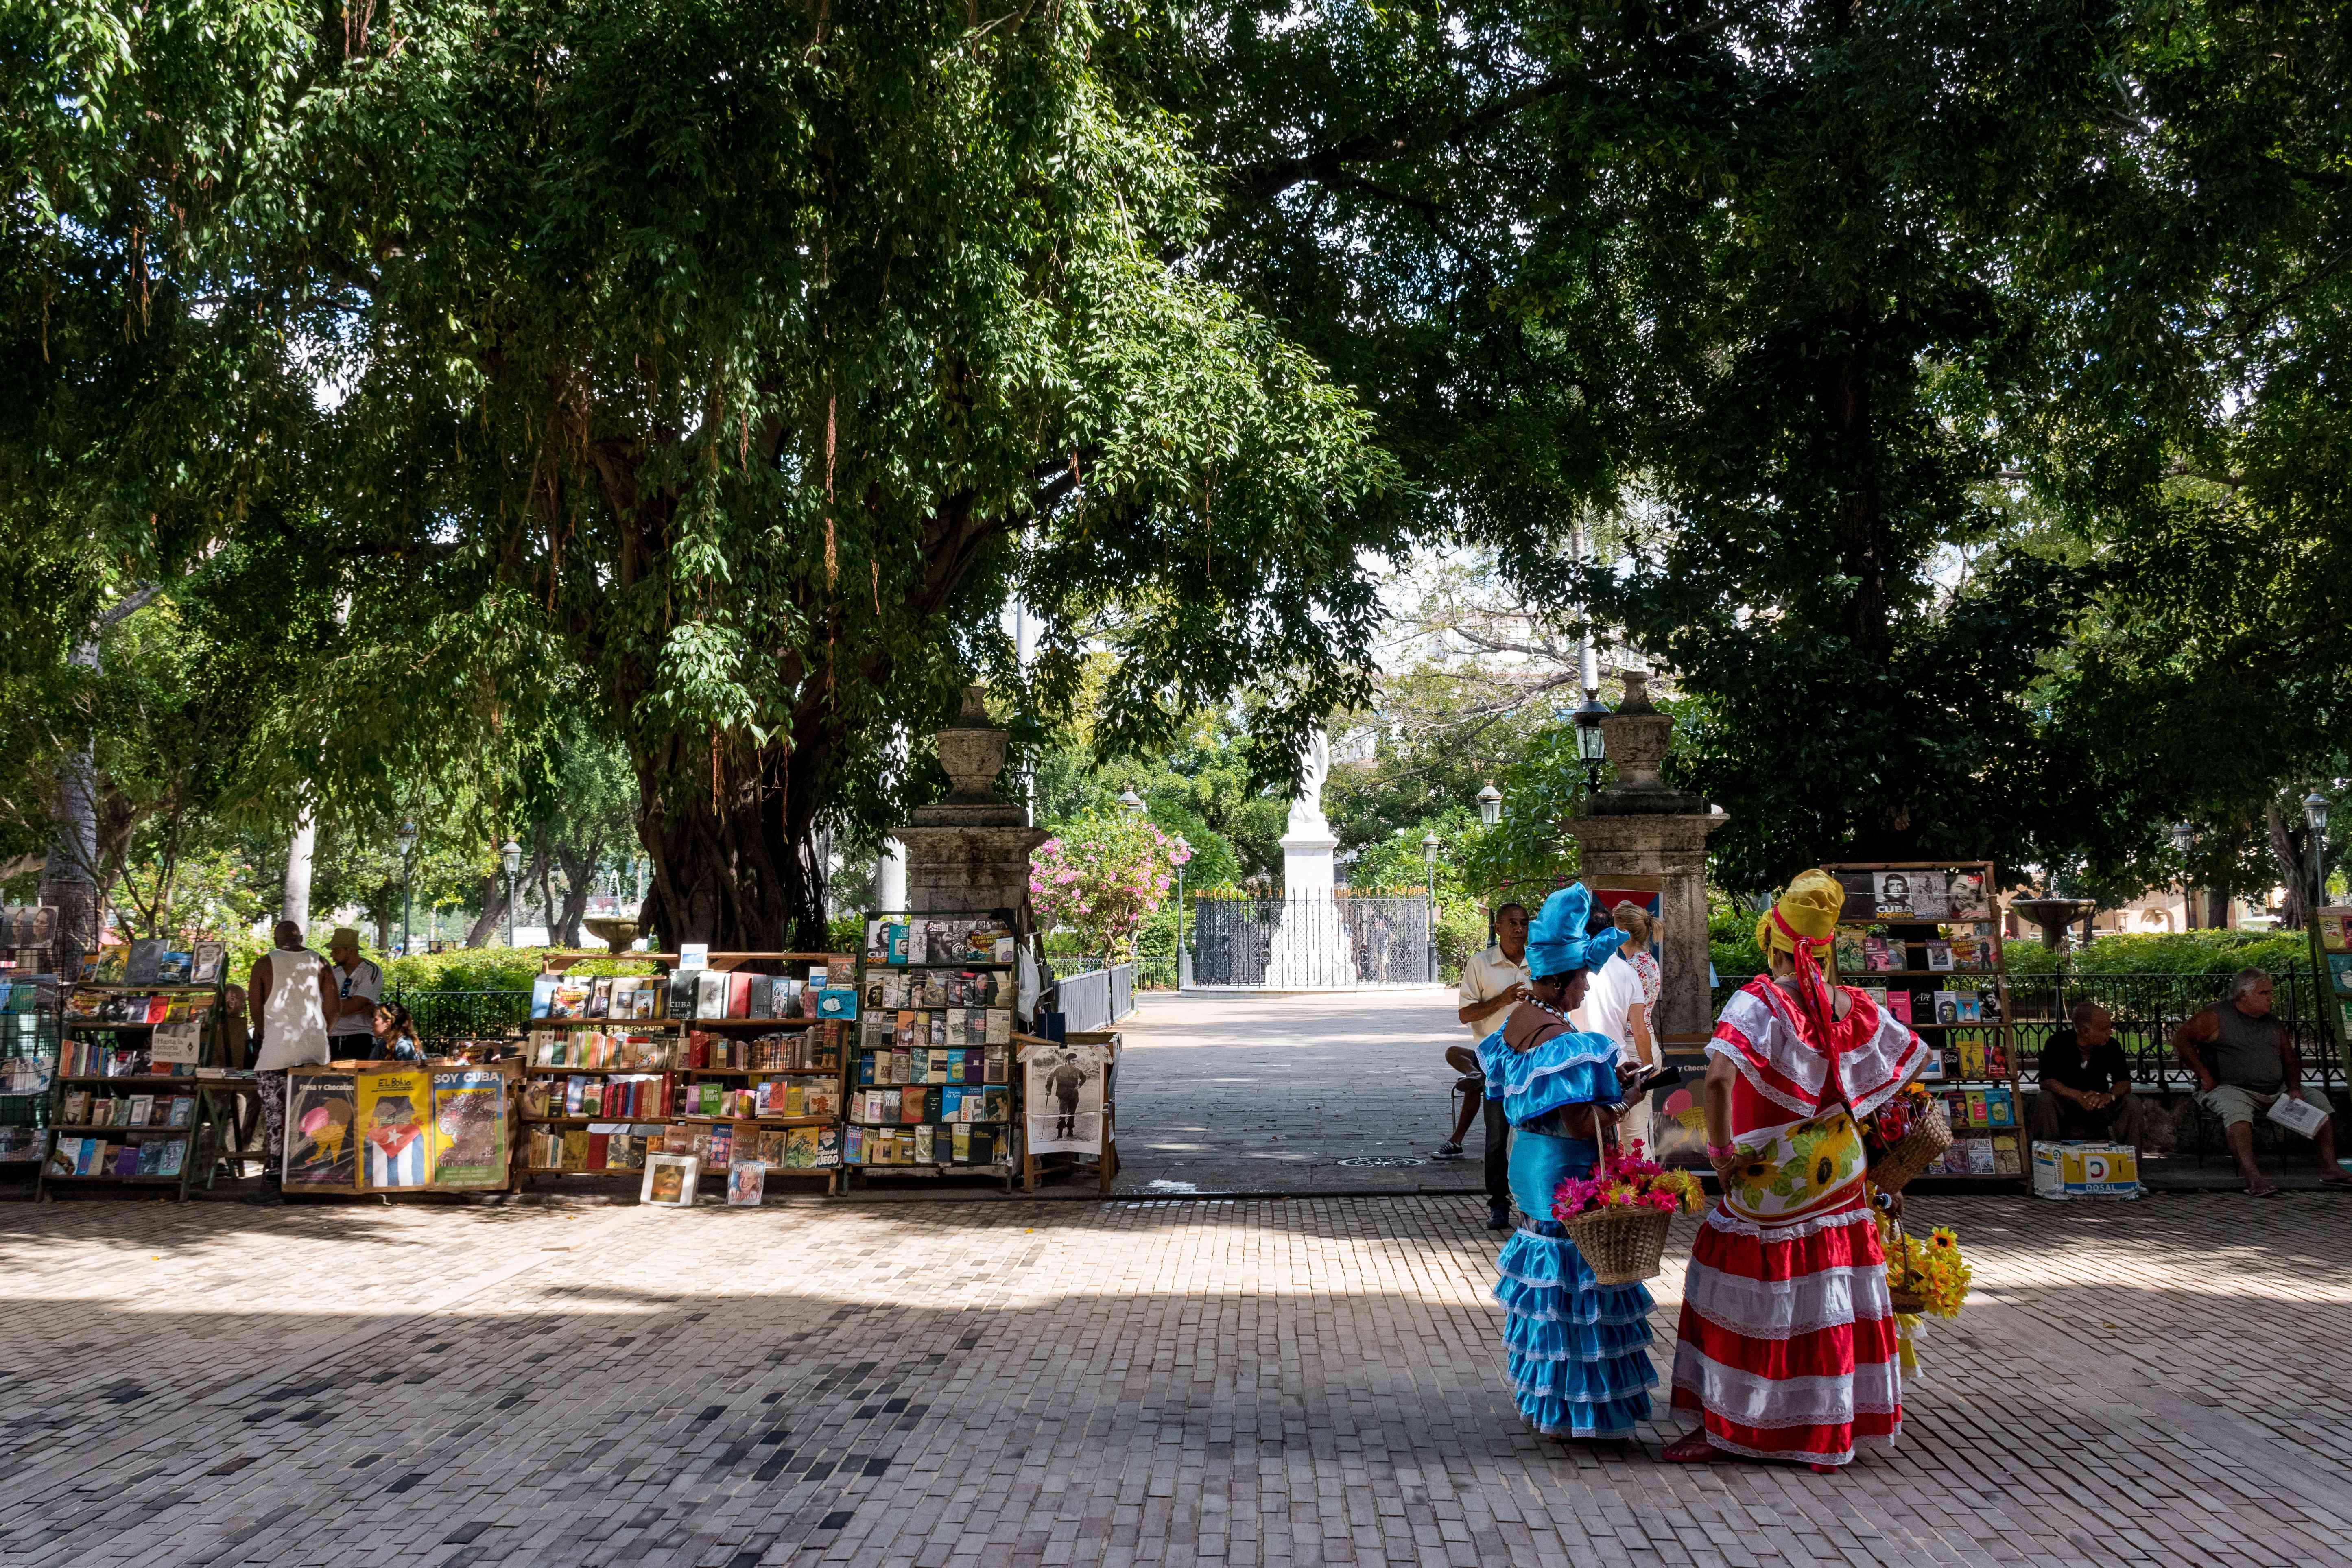 Two women in traditionally colorful outfits walking through old havana